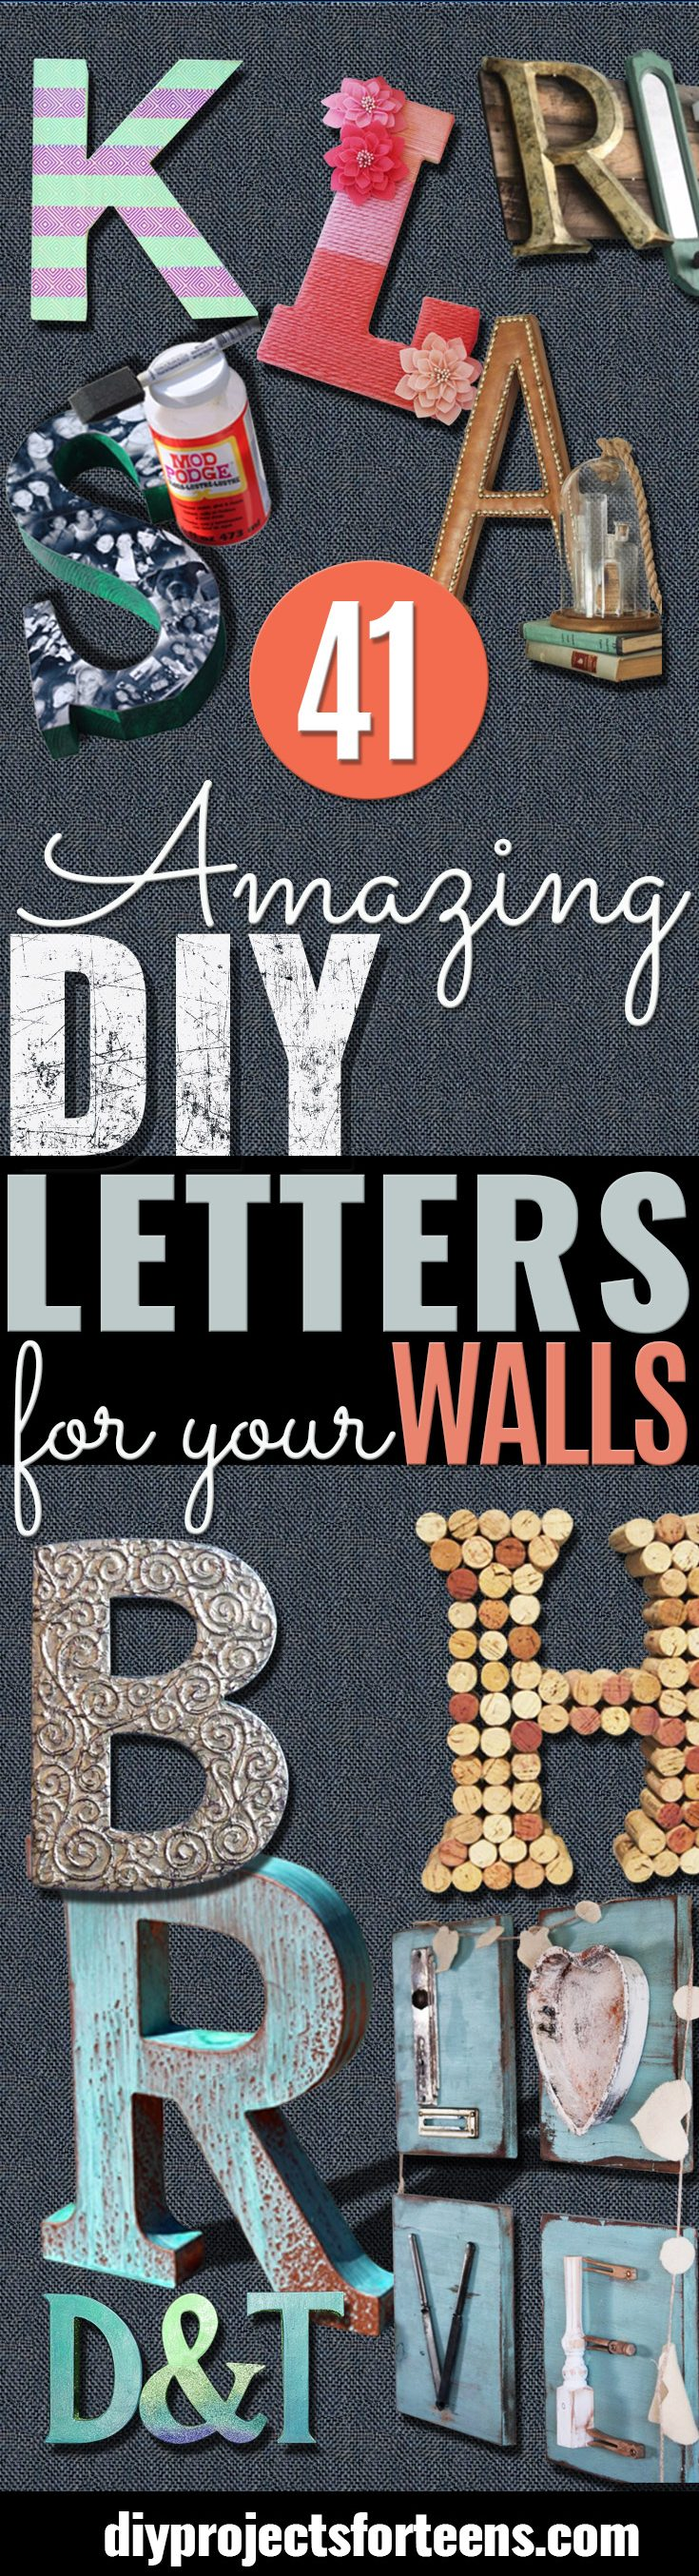 DIY Wall Letters and Initals Wall Art - Cool Architectural Letter Projects for Living Room Decor, Bedroom Ideas. Girl or Boy Nursery. Paint, Glitter, String Art, Easy Cardboard and Rustic Wooden Ideas